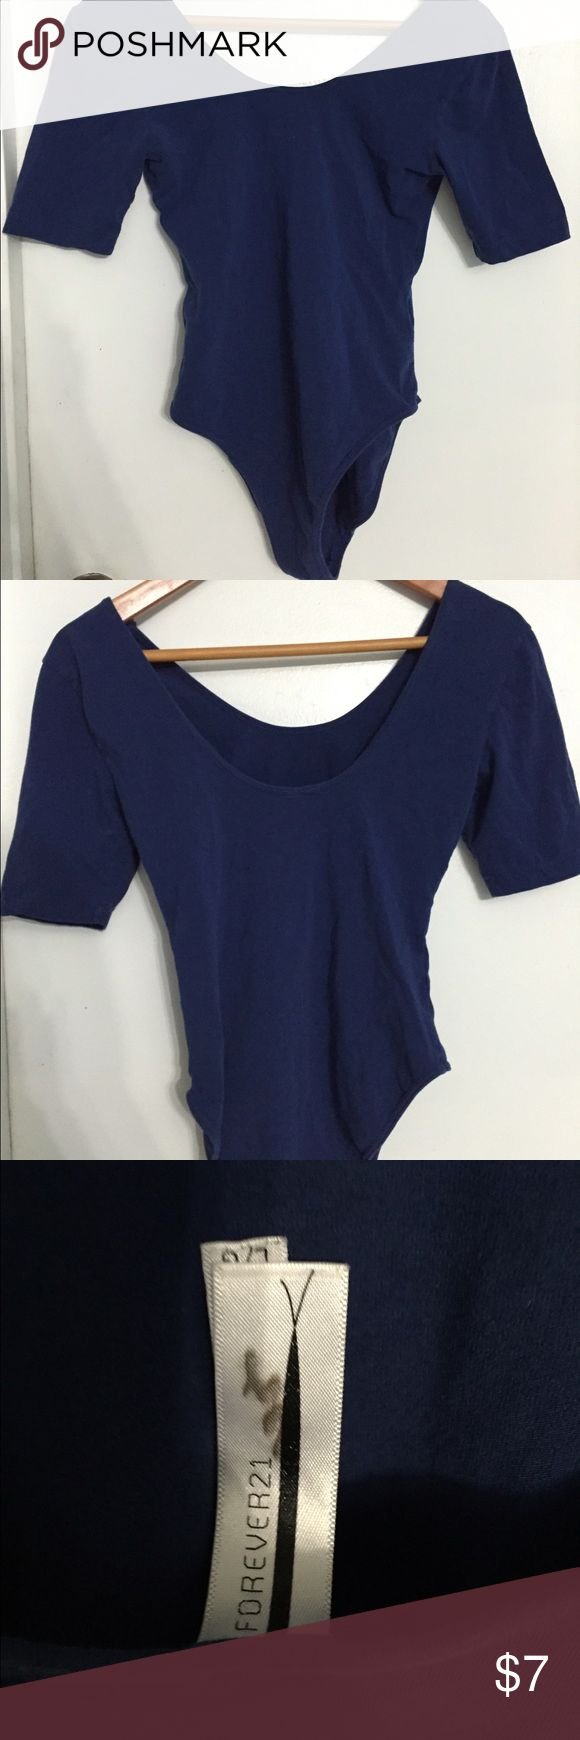 Forever 21 Dark Blue Bodysuit Leotard Basically new! Only used once for trying on. Feel like a ballerina in this dark blue bodysuit! Low Round Neck cut on front and back (back is a bit lower than front). Perfect for tucking into skirts or jeans! No stains, except for small printing stain on tag. Forever 21 Tops